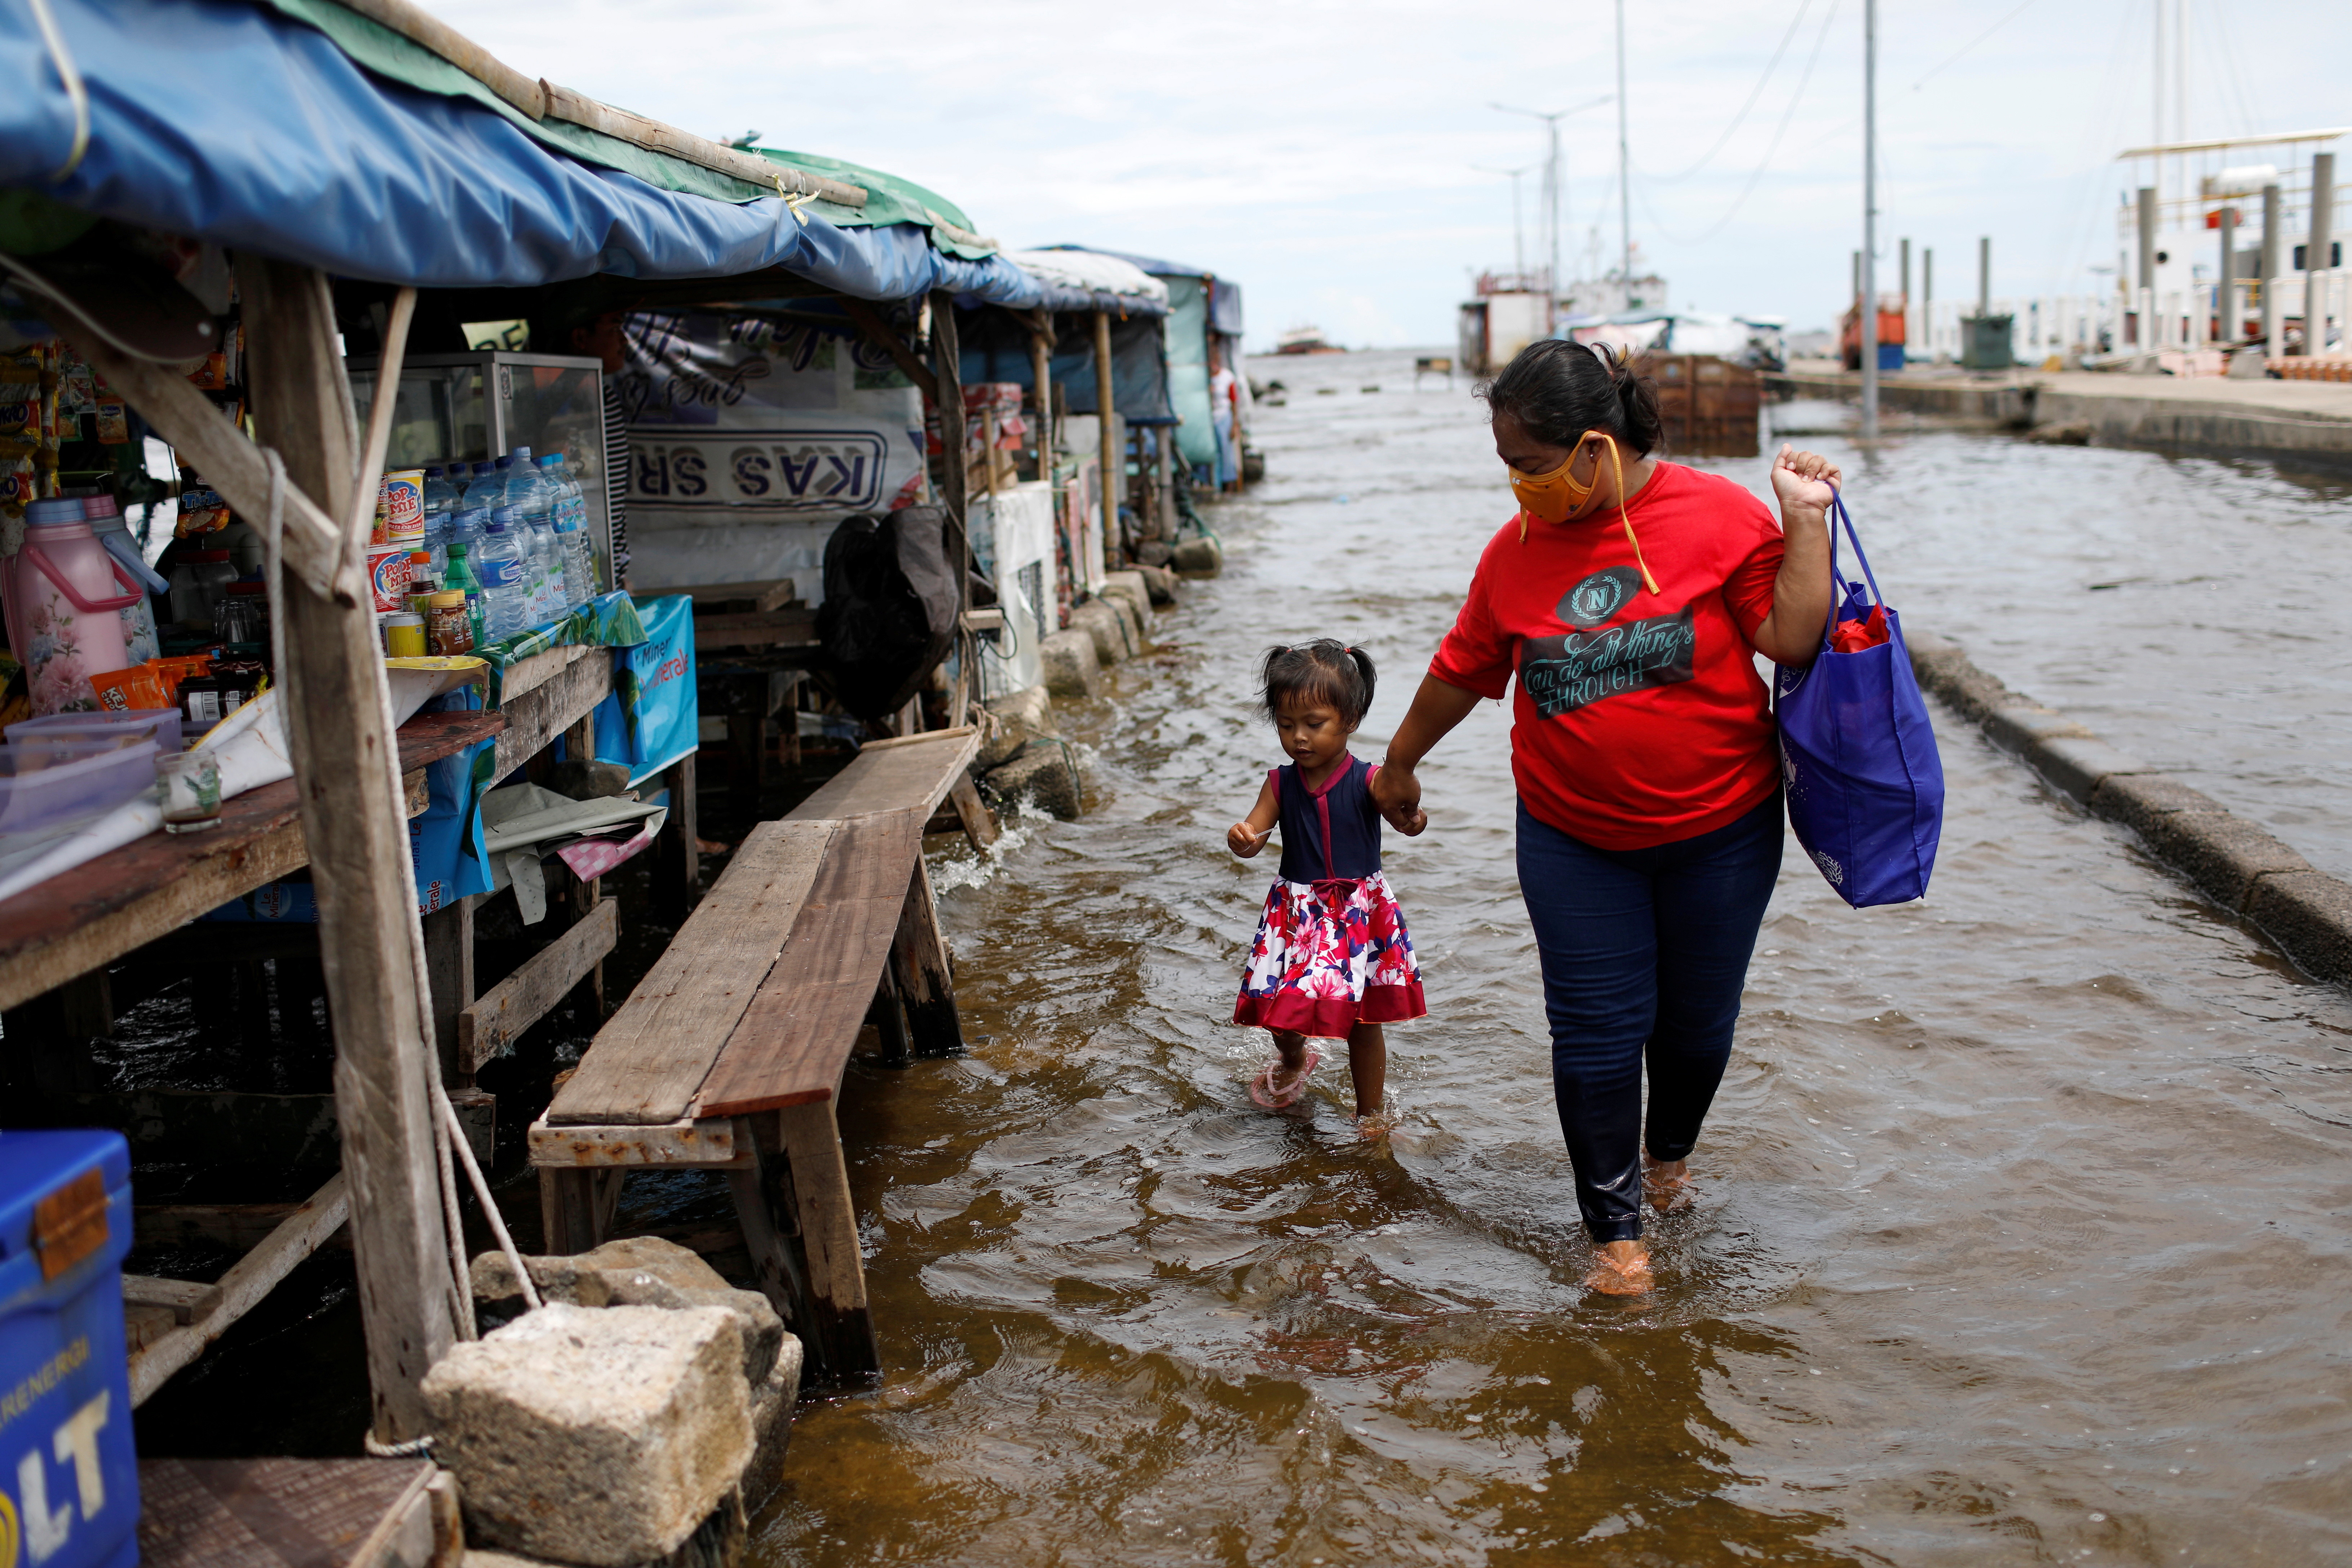 Evi, a 35-years-old vendor, walks with her 2-years-old daughter through water at Kali Adem port, which is impacted by high tides due to the rising sea level and land subsidence, north of Jakarta, Indonesia November 20, 2020. REUTERS/Willy Kurniawan - RC2Z6K91NY4N